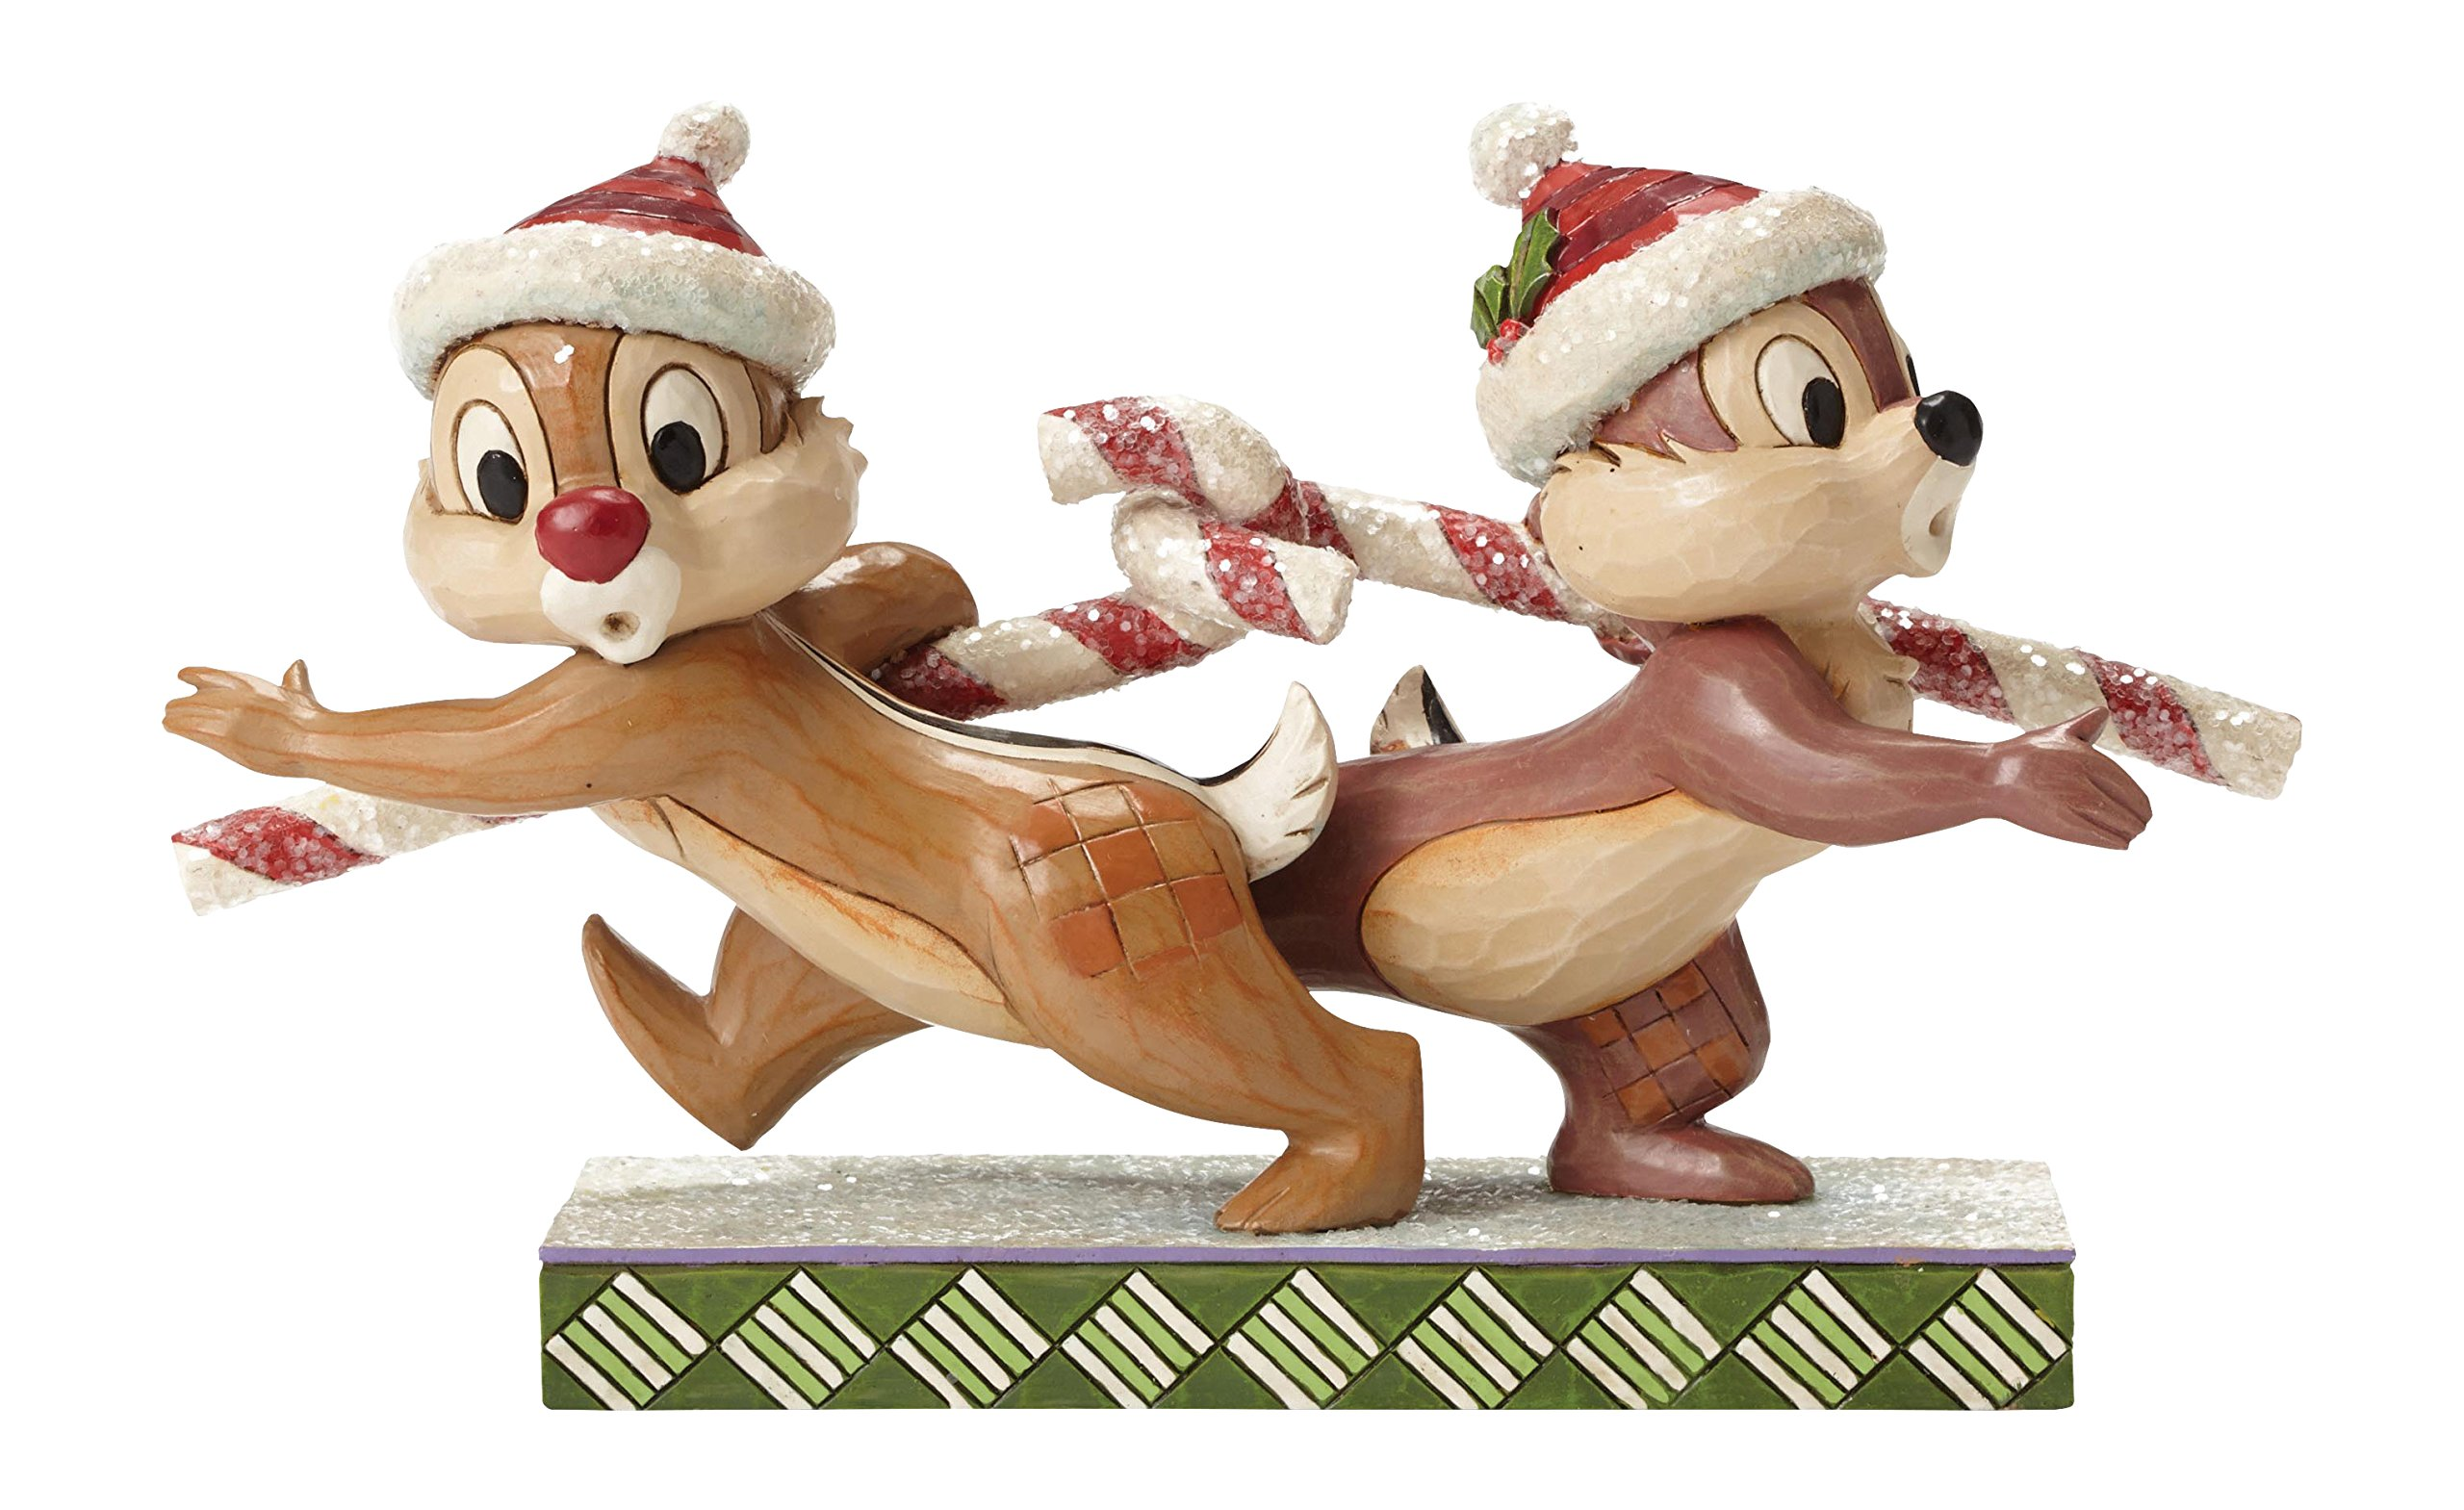 Disney Traditions by Jim Shore Chip 'n' Dale Stone Resin Figurine, 4.75""